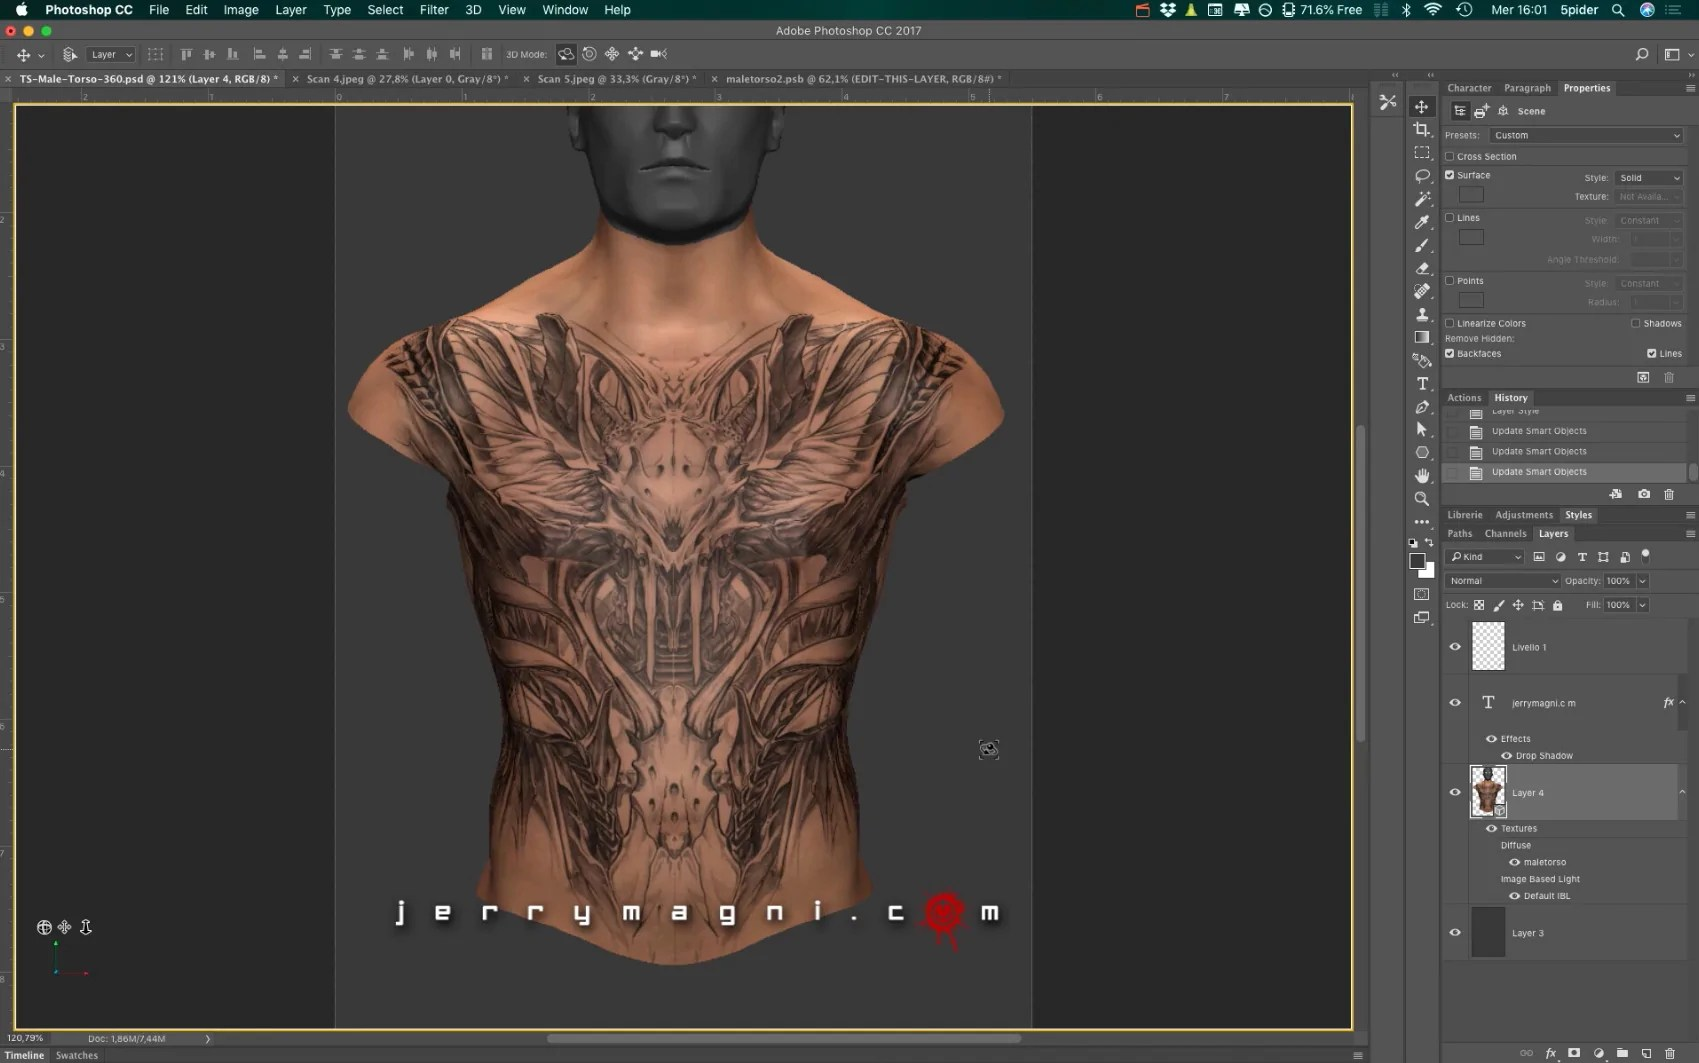 Digital Tutorials 3Rd Dimension Tattoo Design By Jerry Ideas And Designs